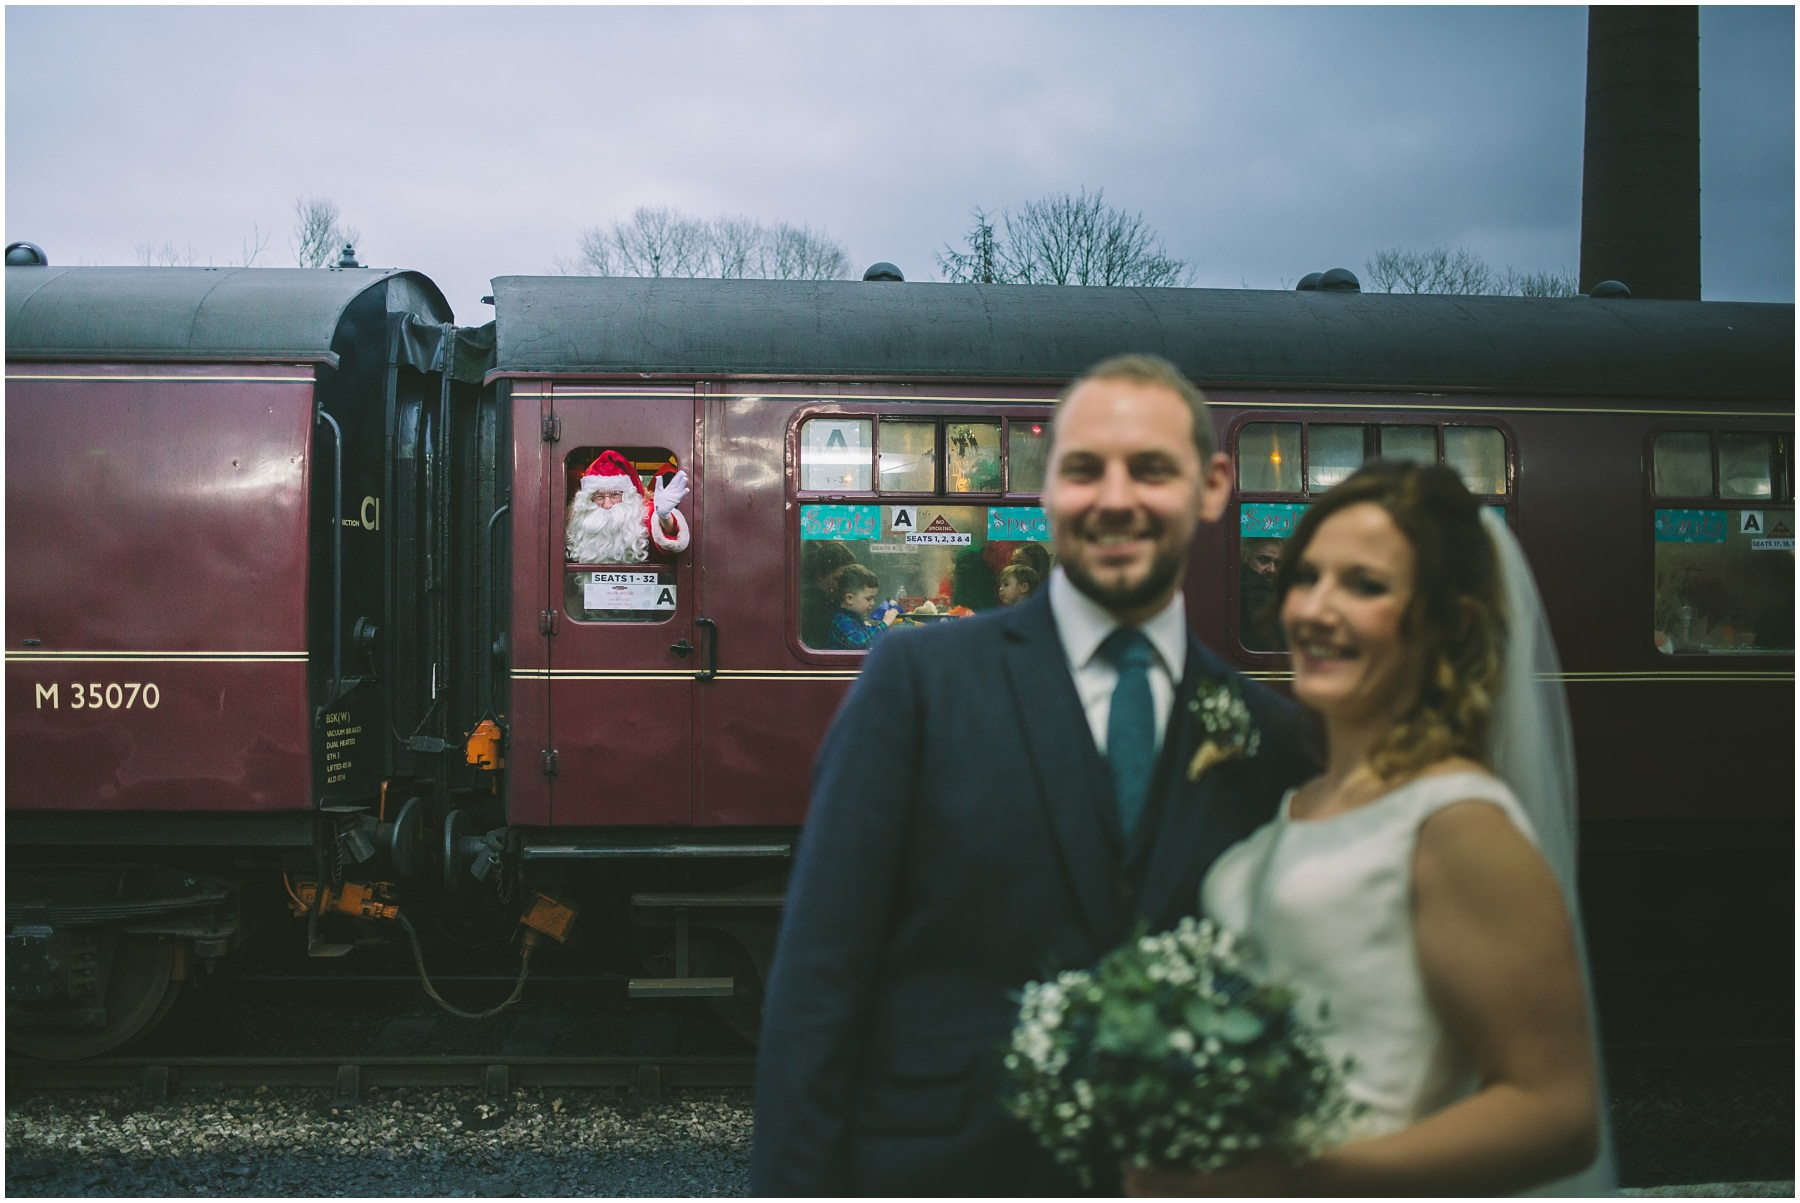 Santa photobombs couple at Ramsbottom train station